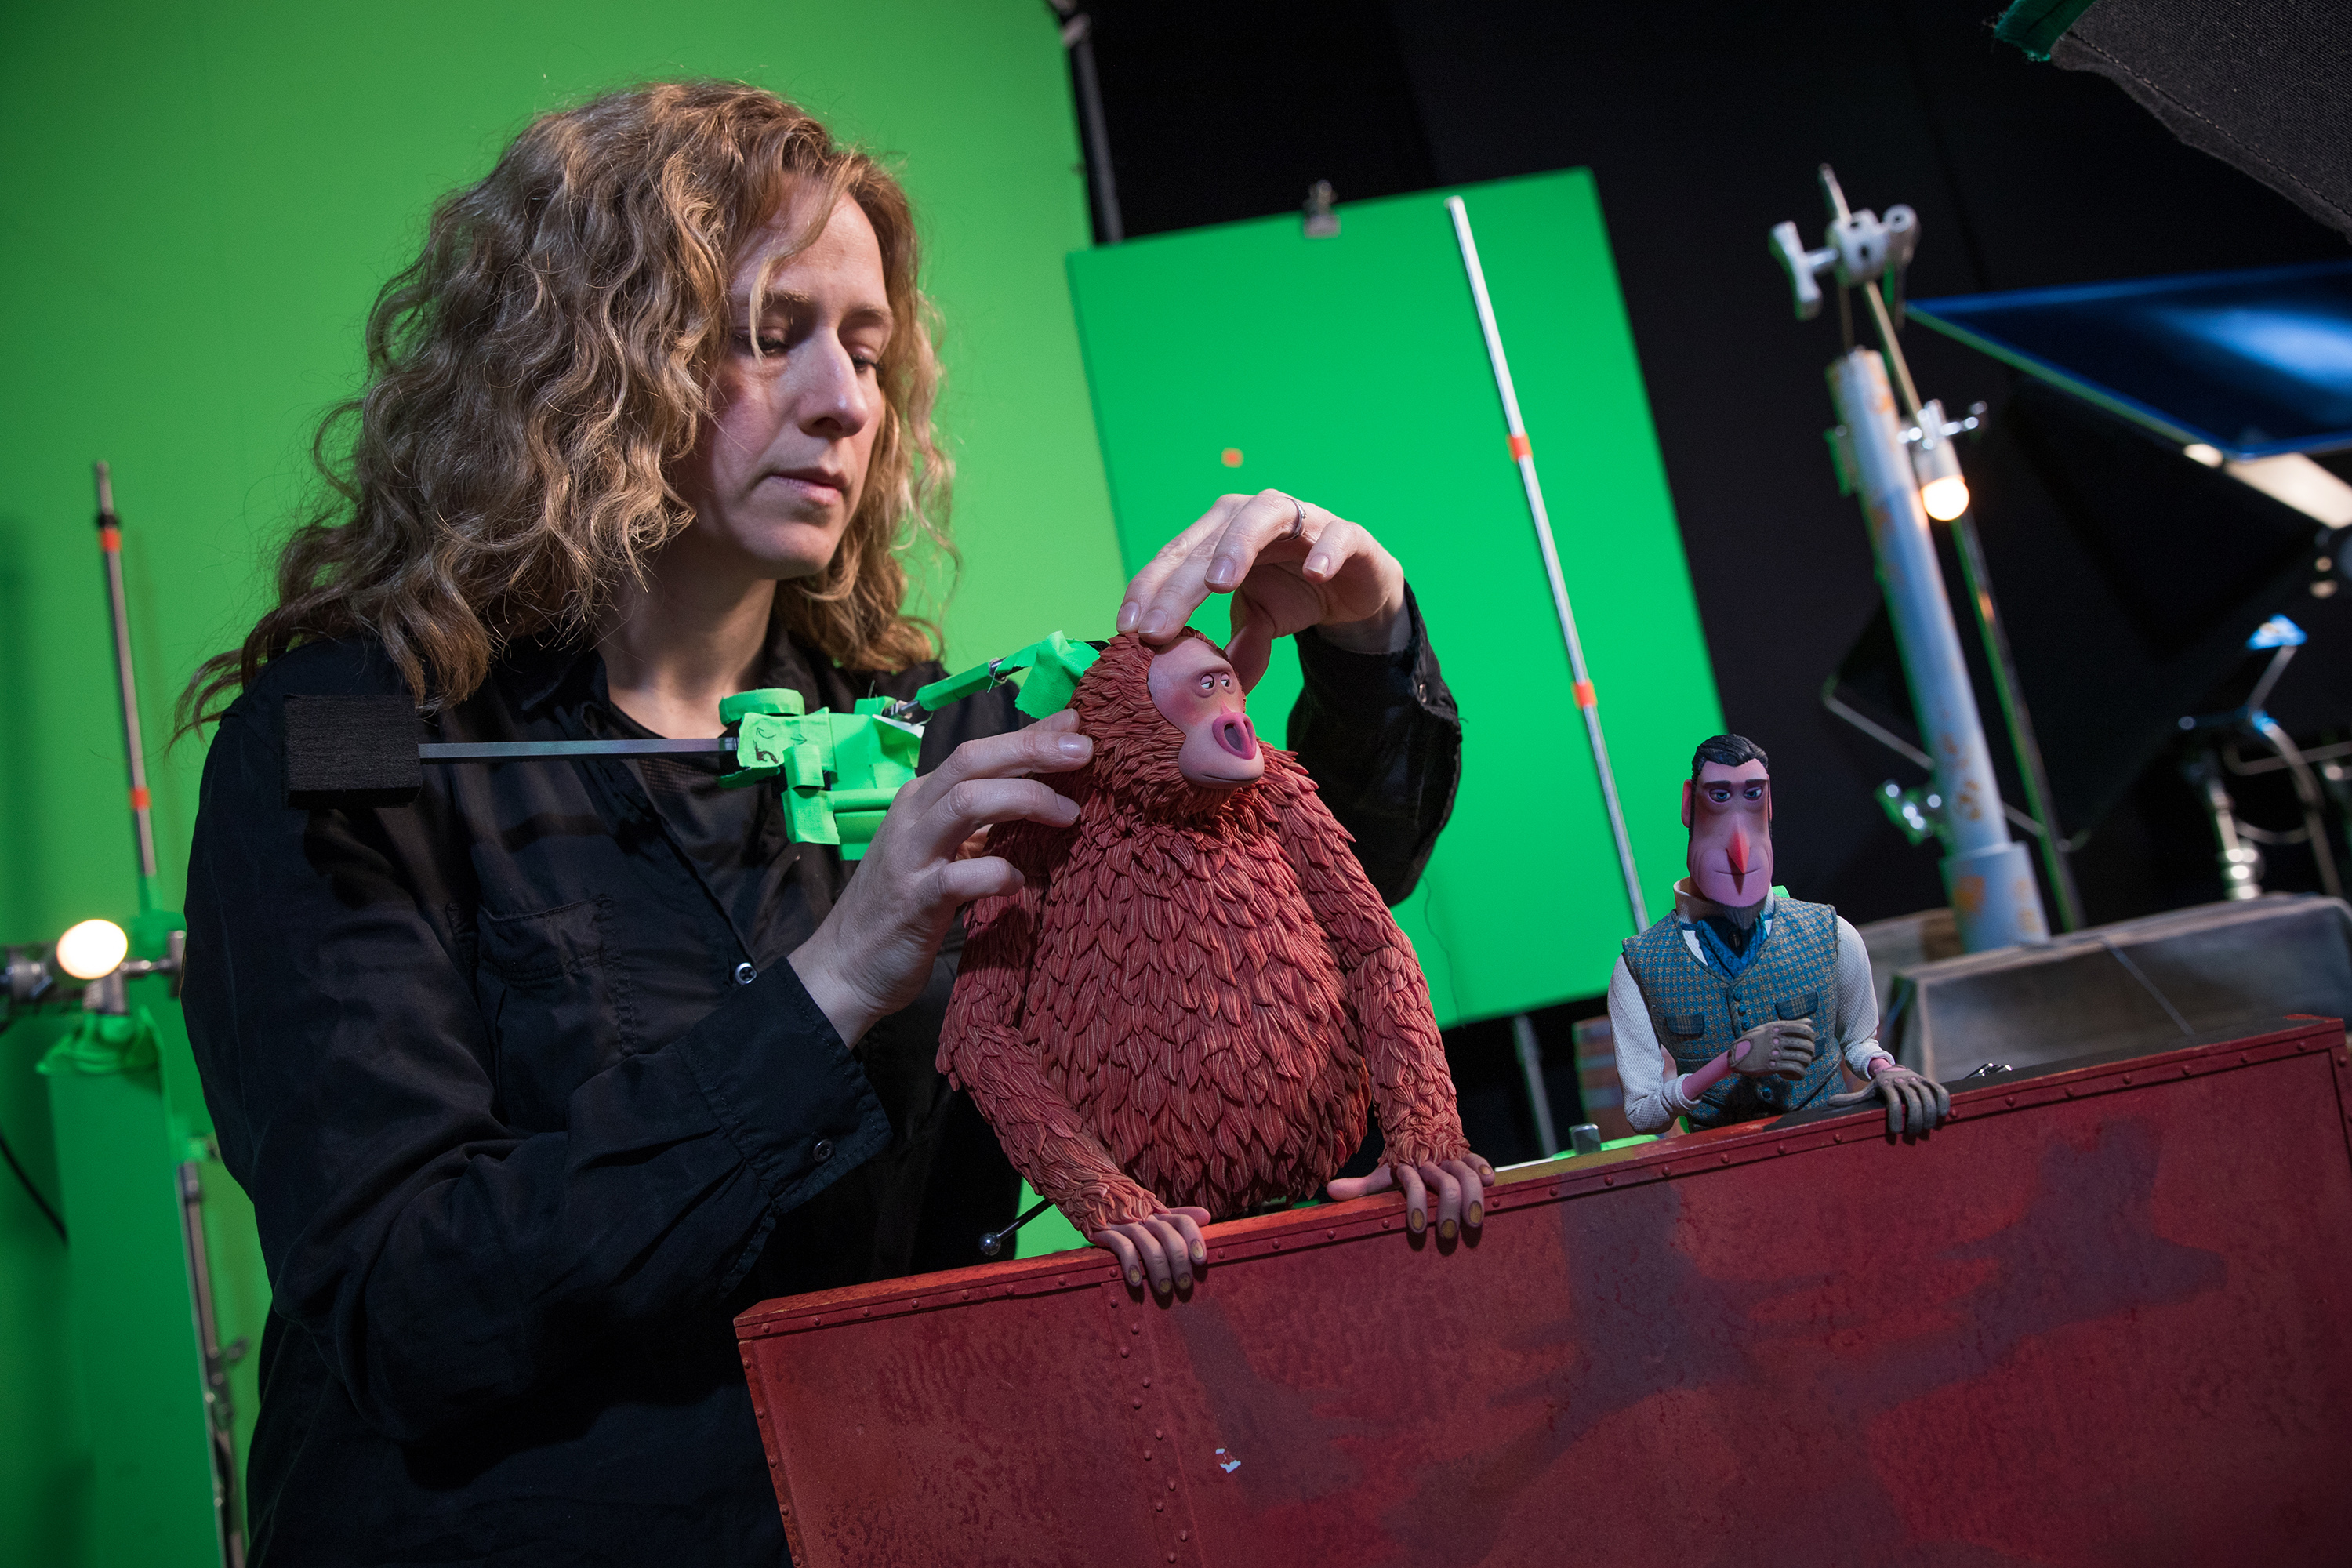 In stop-motion animation physical models are minimally manipulated between frames – 24 make one second of the film. Photo via LAIKA.